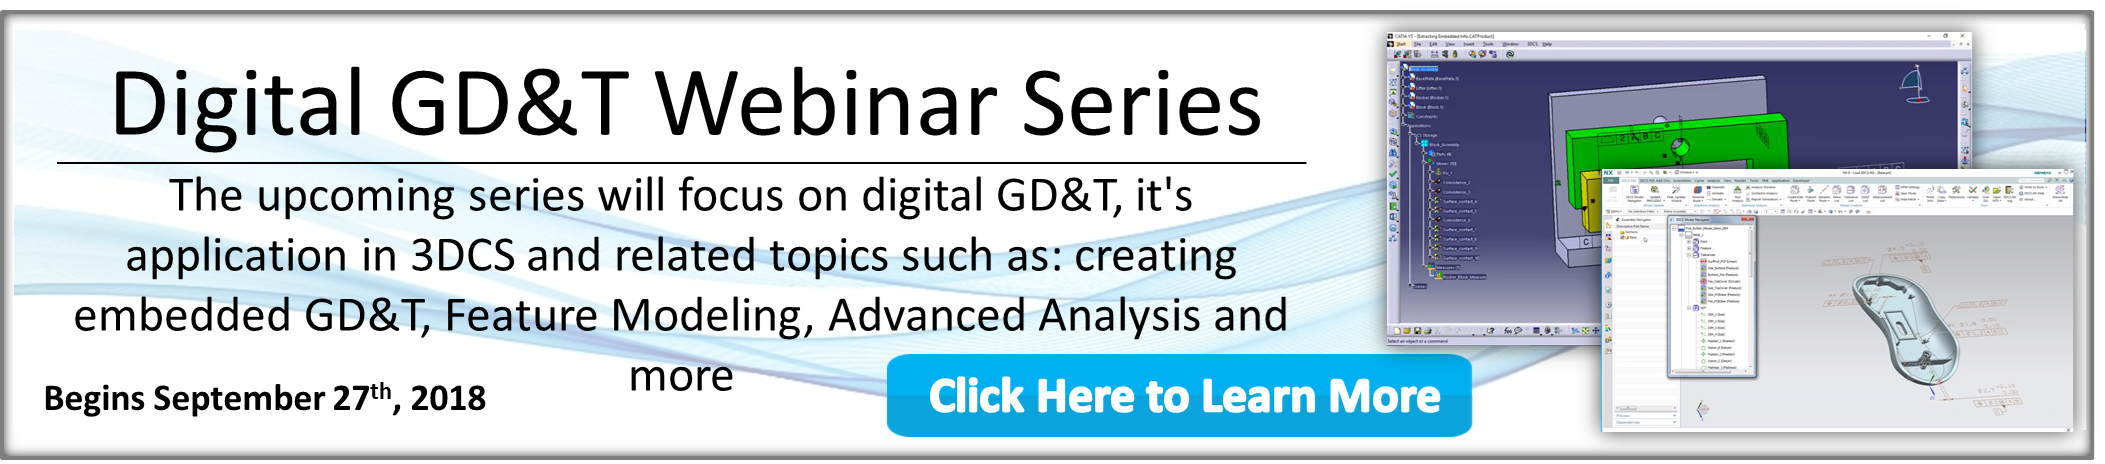 GD&T Applications Webinar Tomorrow! Learn from DCS' ASME Certified Trainer how to handle GD&T Scenarios